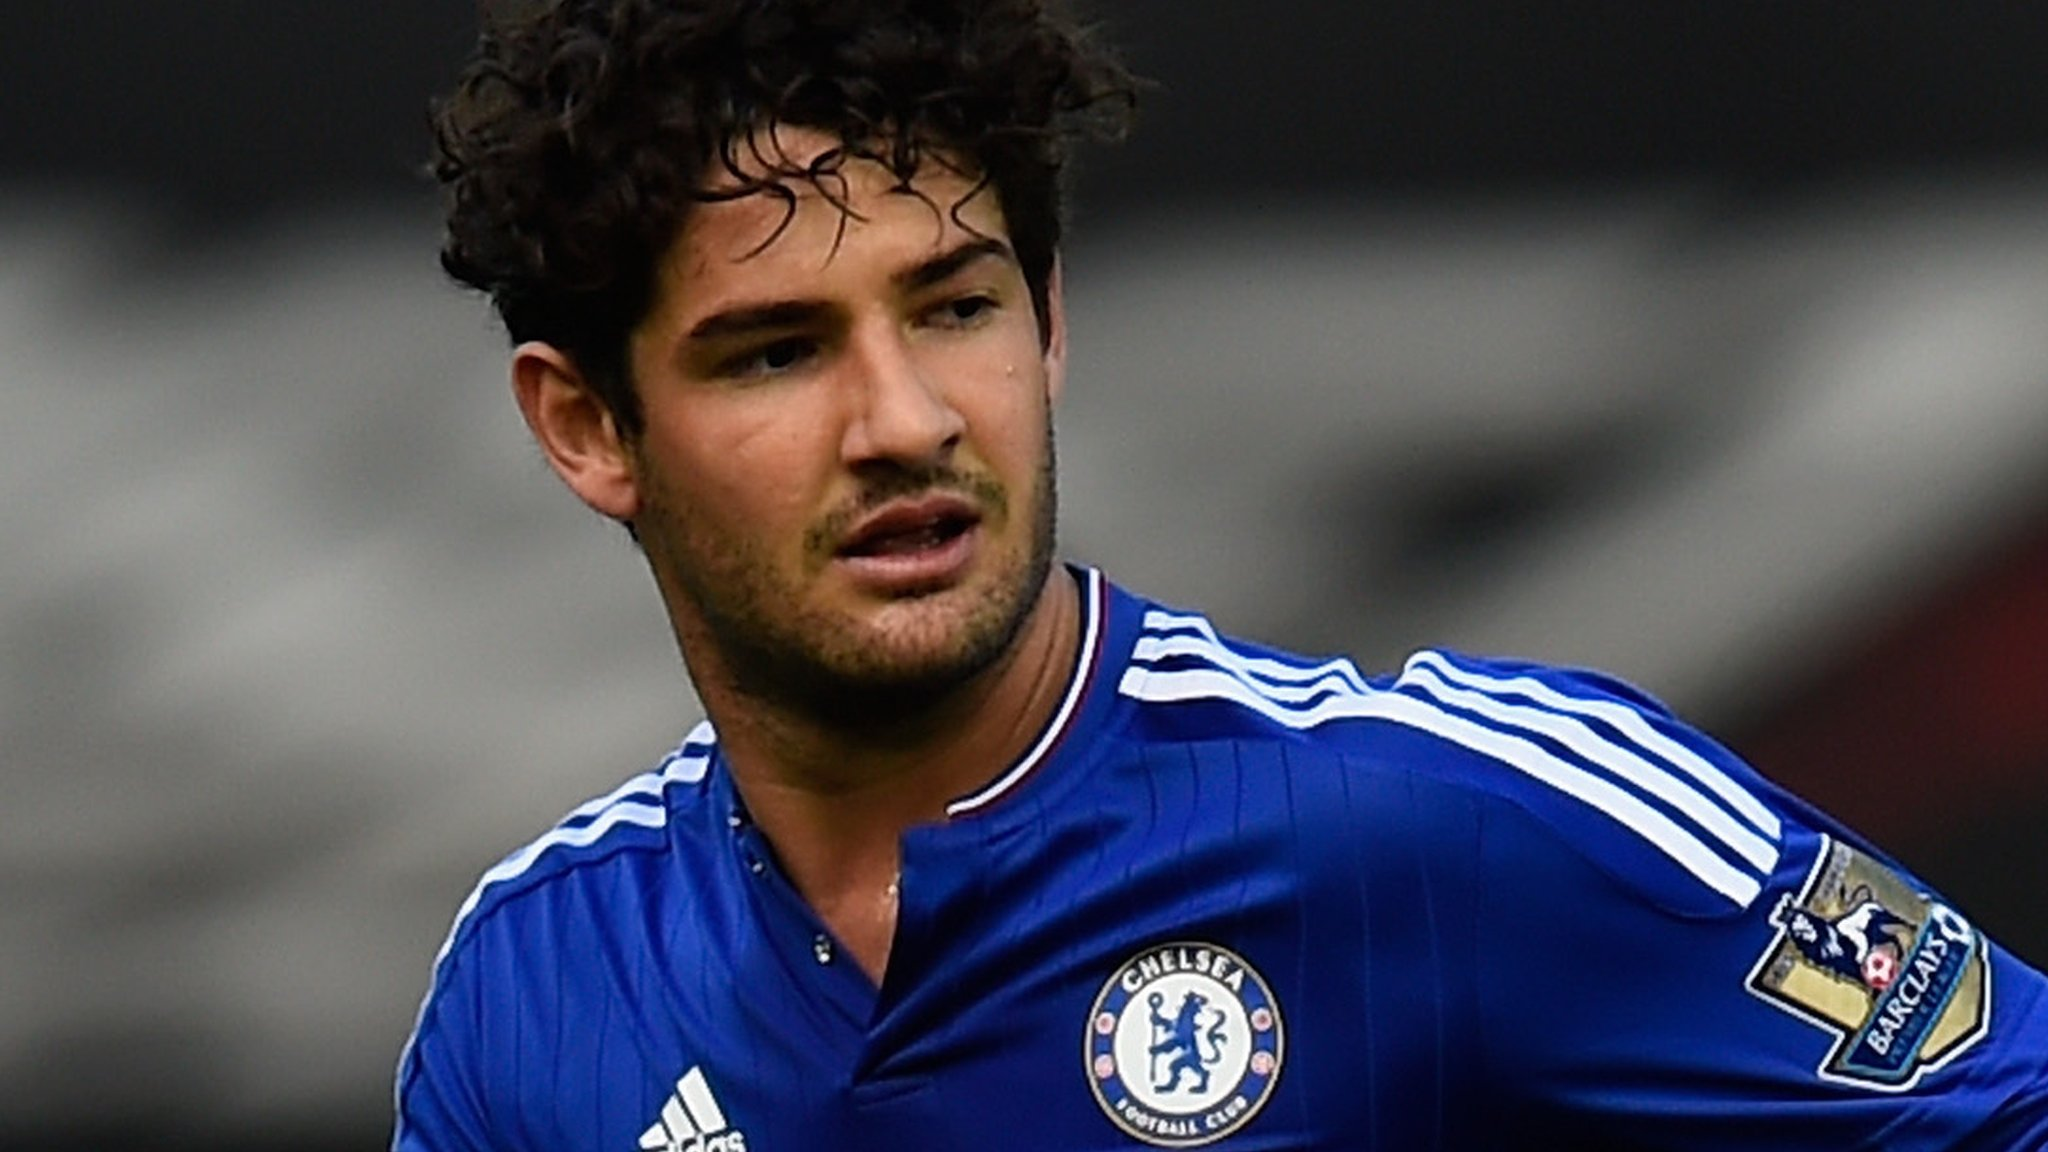 Chelsea confirm exits of Pato, Falcao and Amelia